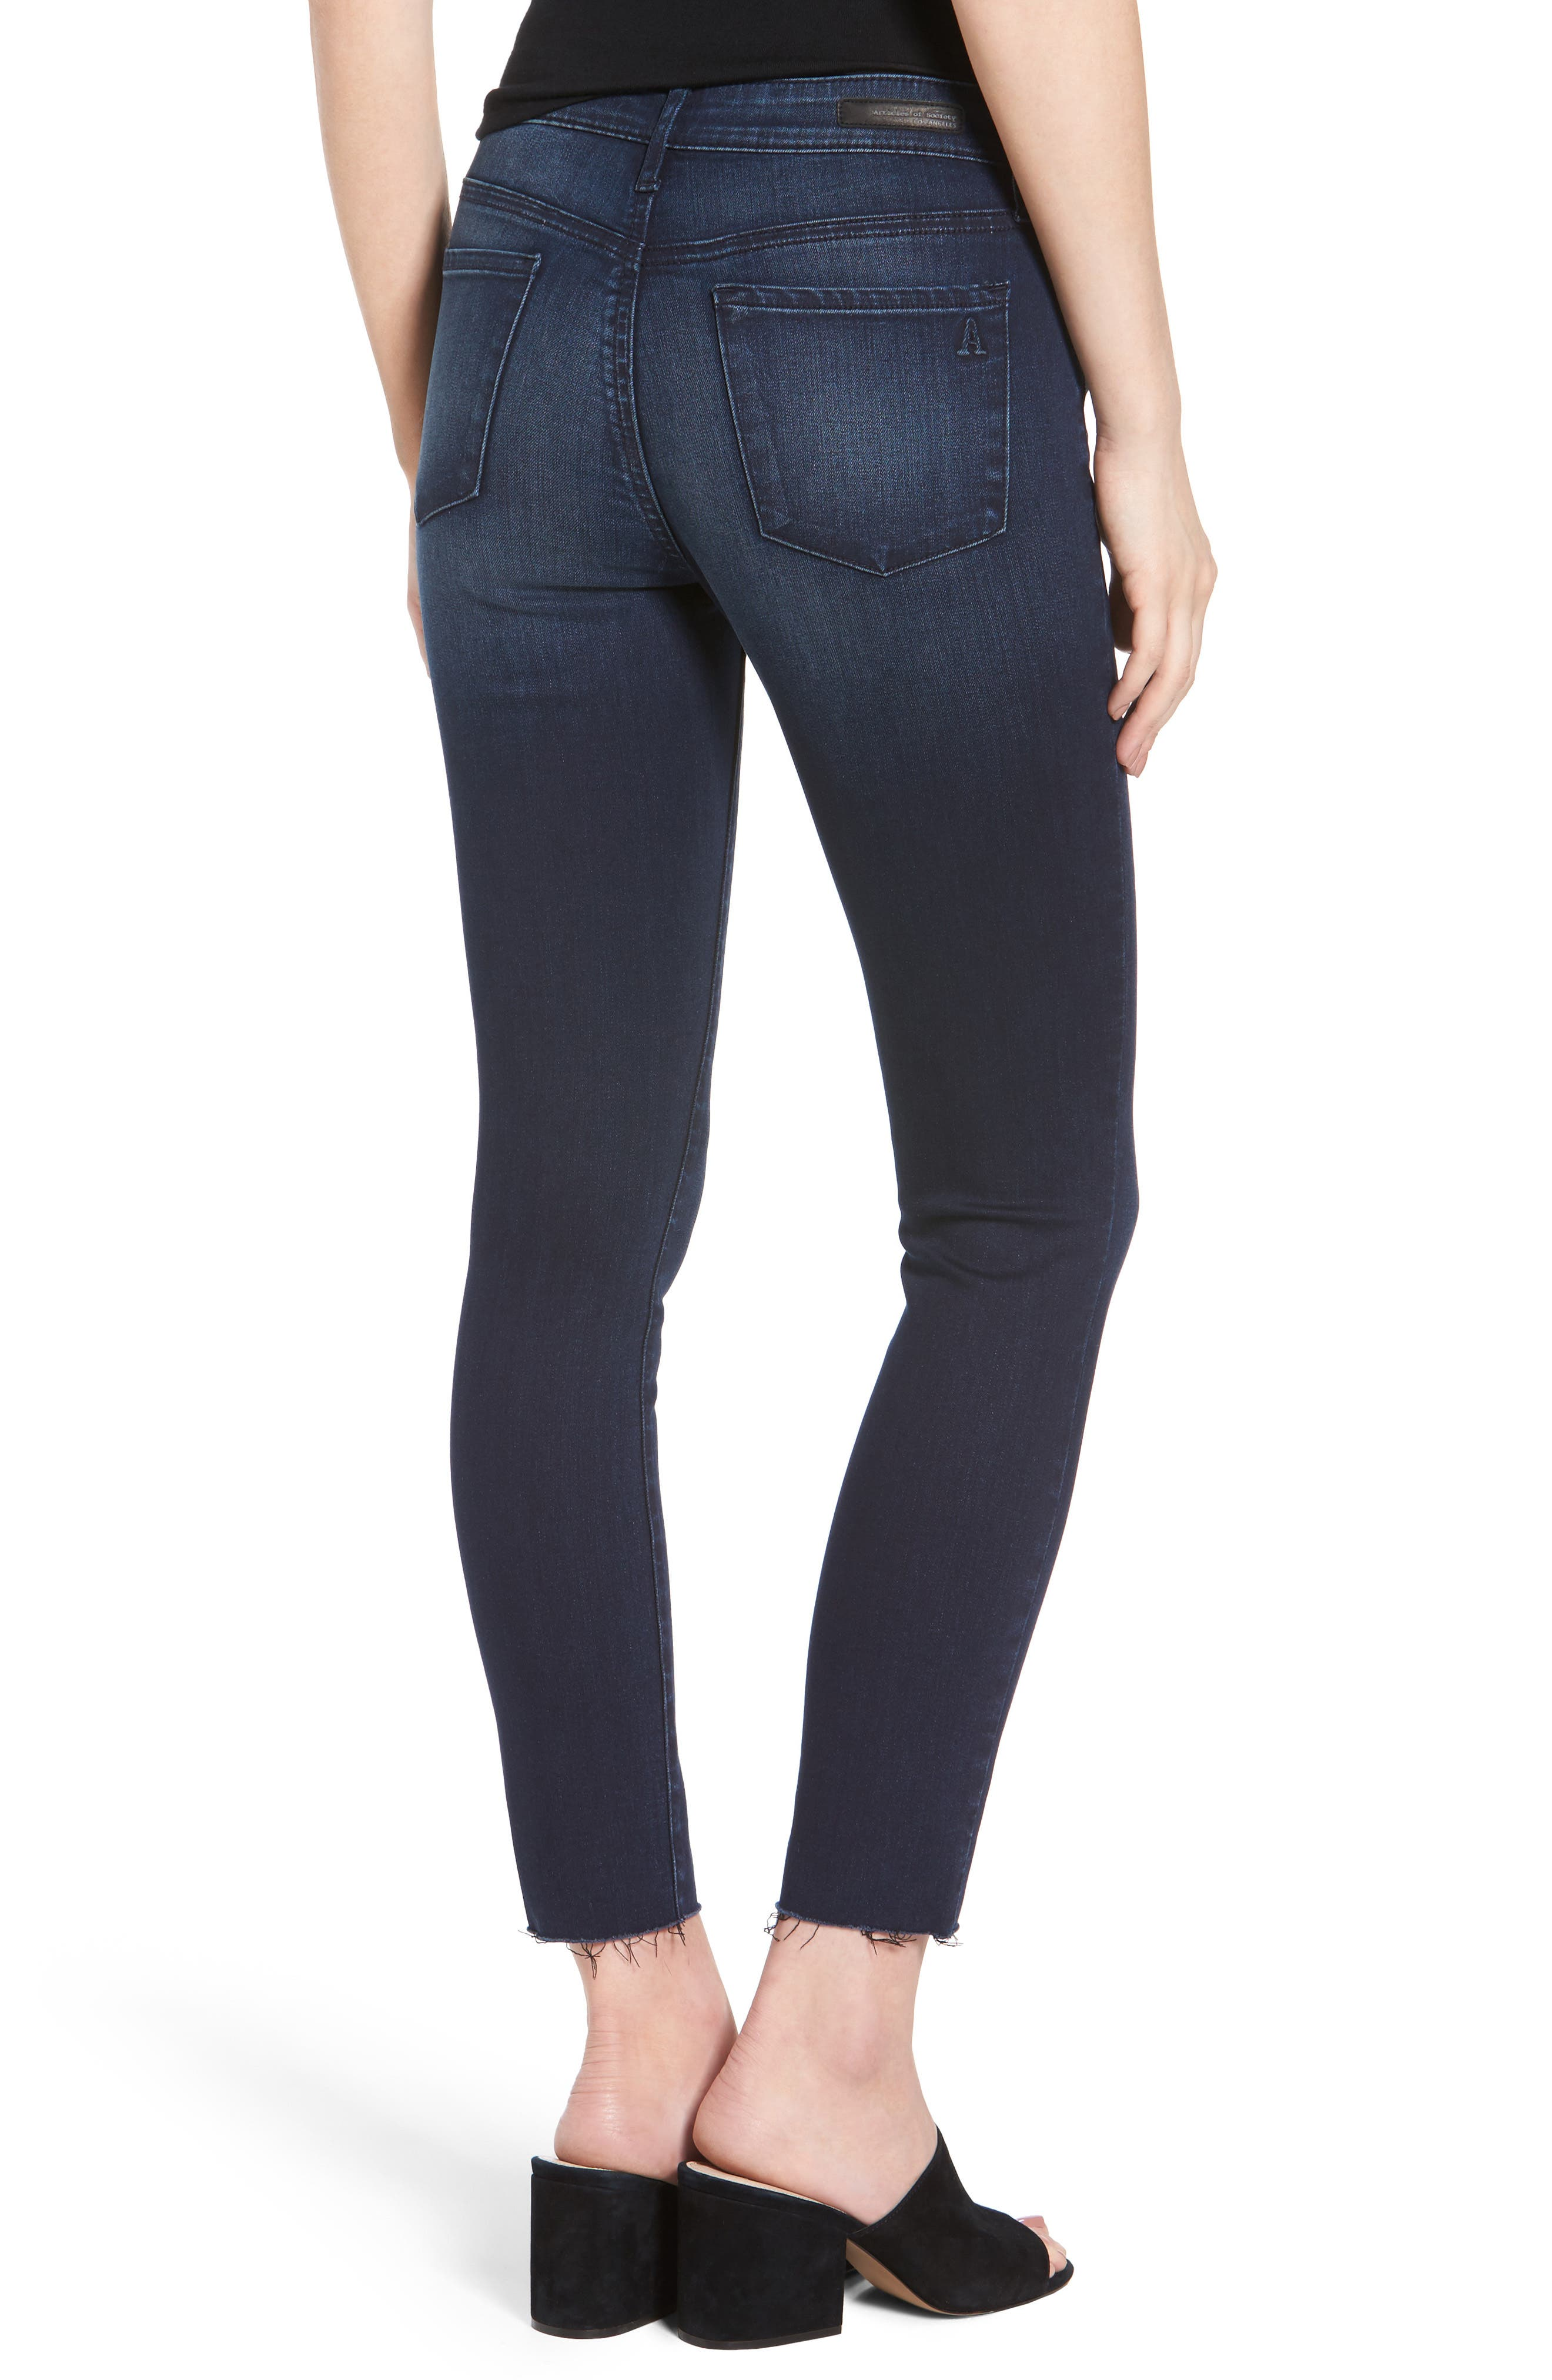 ARTICLES OF SOCIETY,                             Carly Crop Skinny Jeans,                             Alternate thumbnail 2, color,                             499